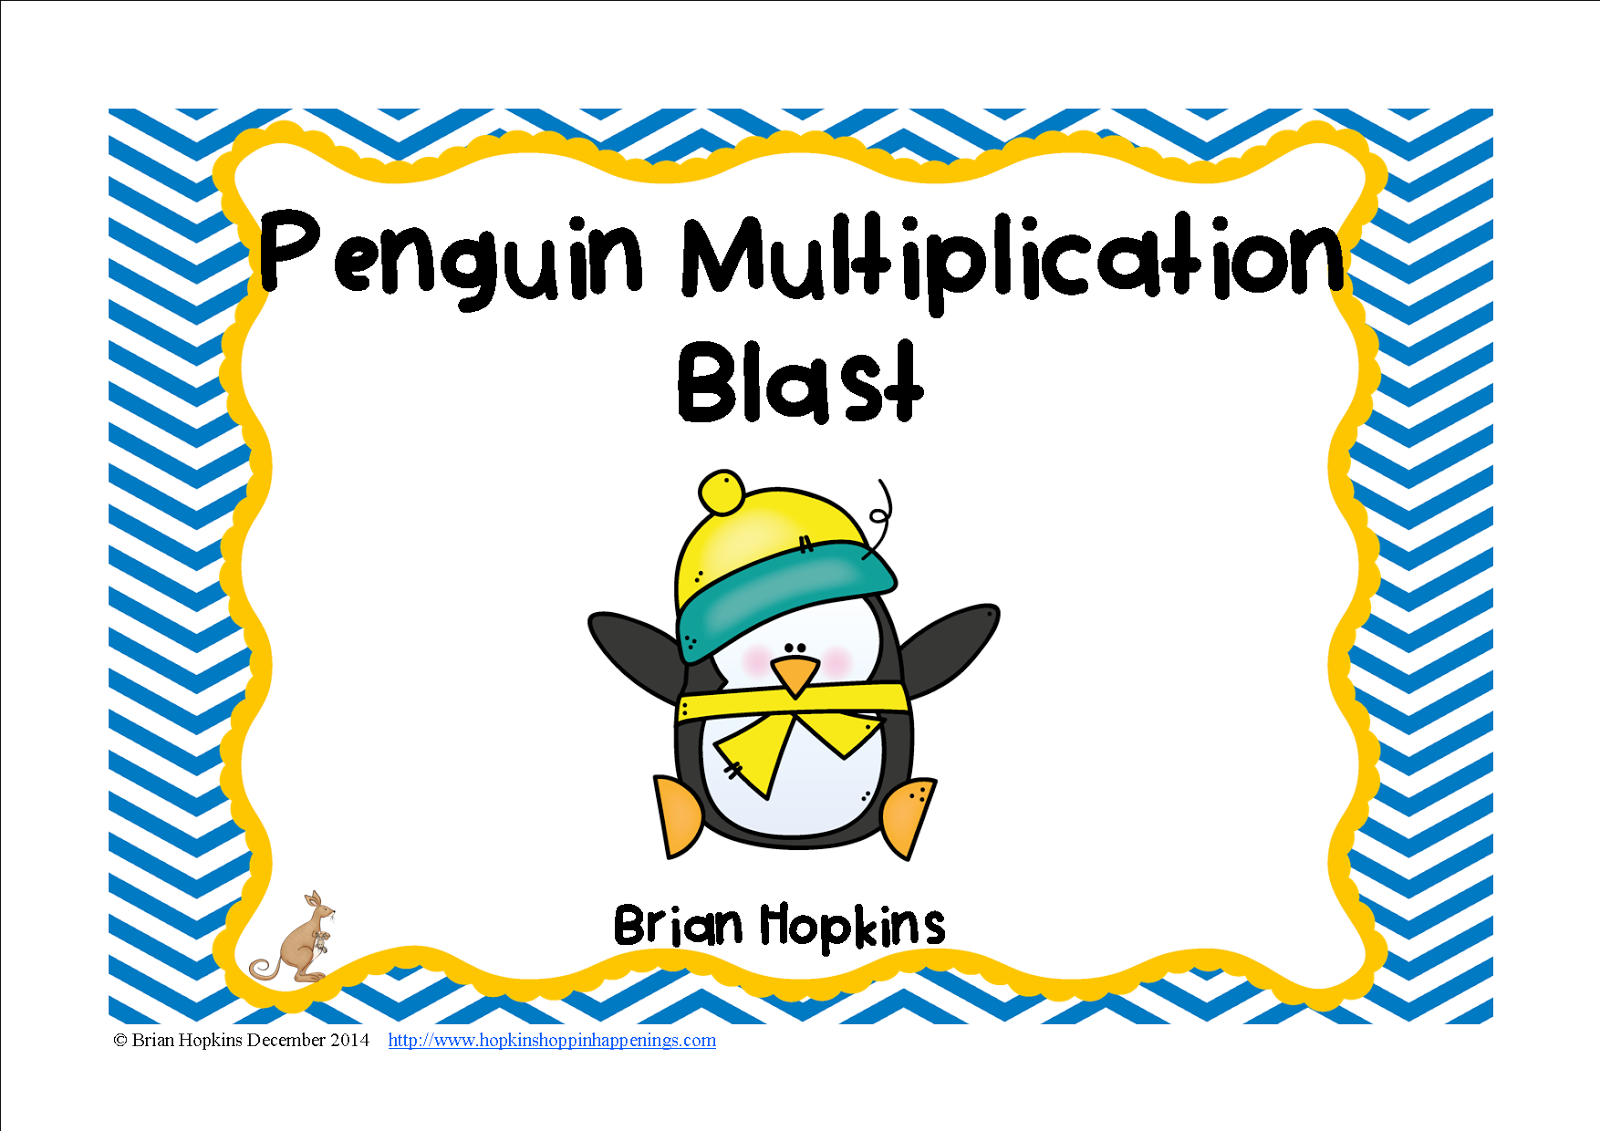 https://www.teacherspayteachers.com/Product/Penguin-Multiplication-Blast-1611078